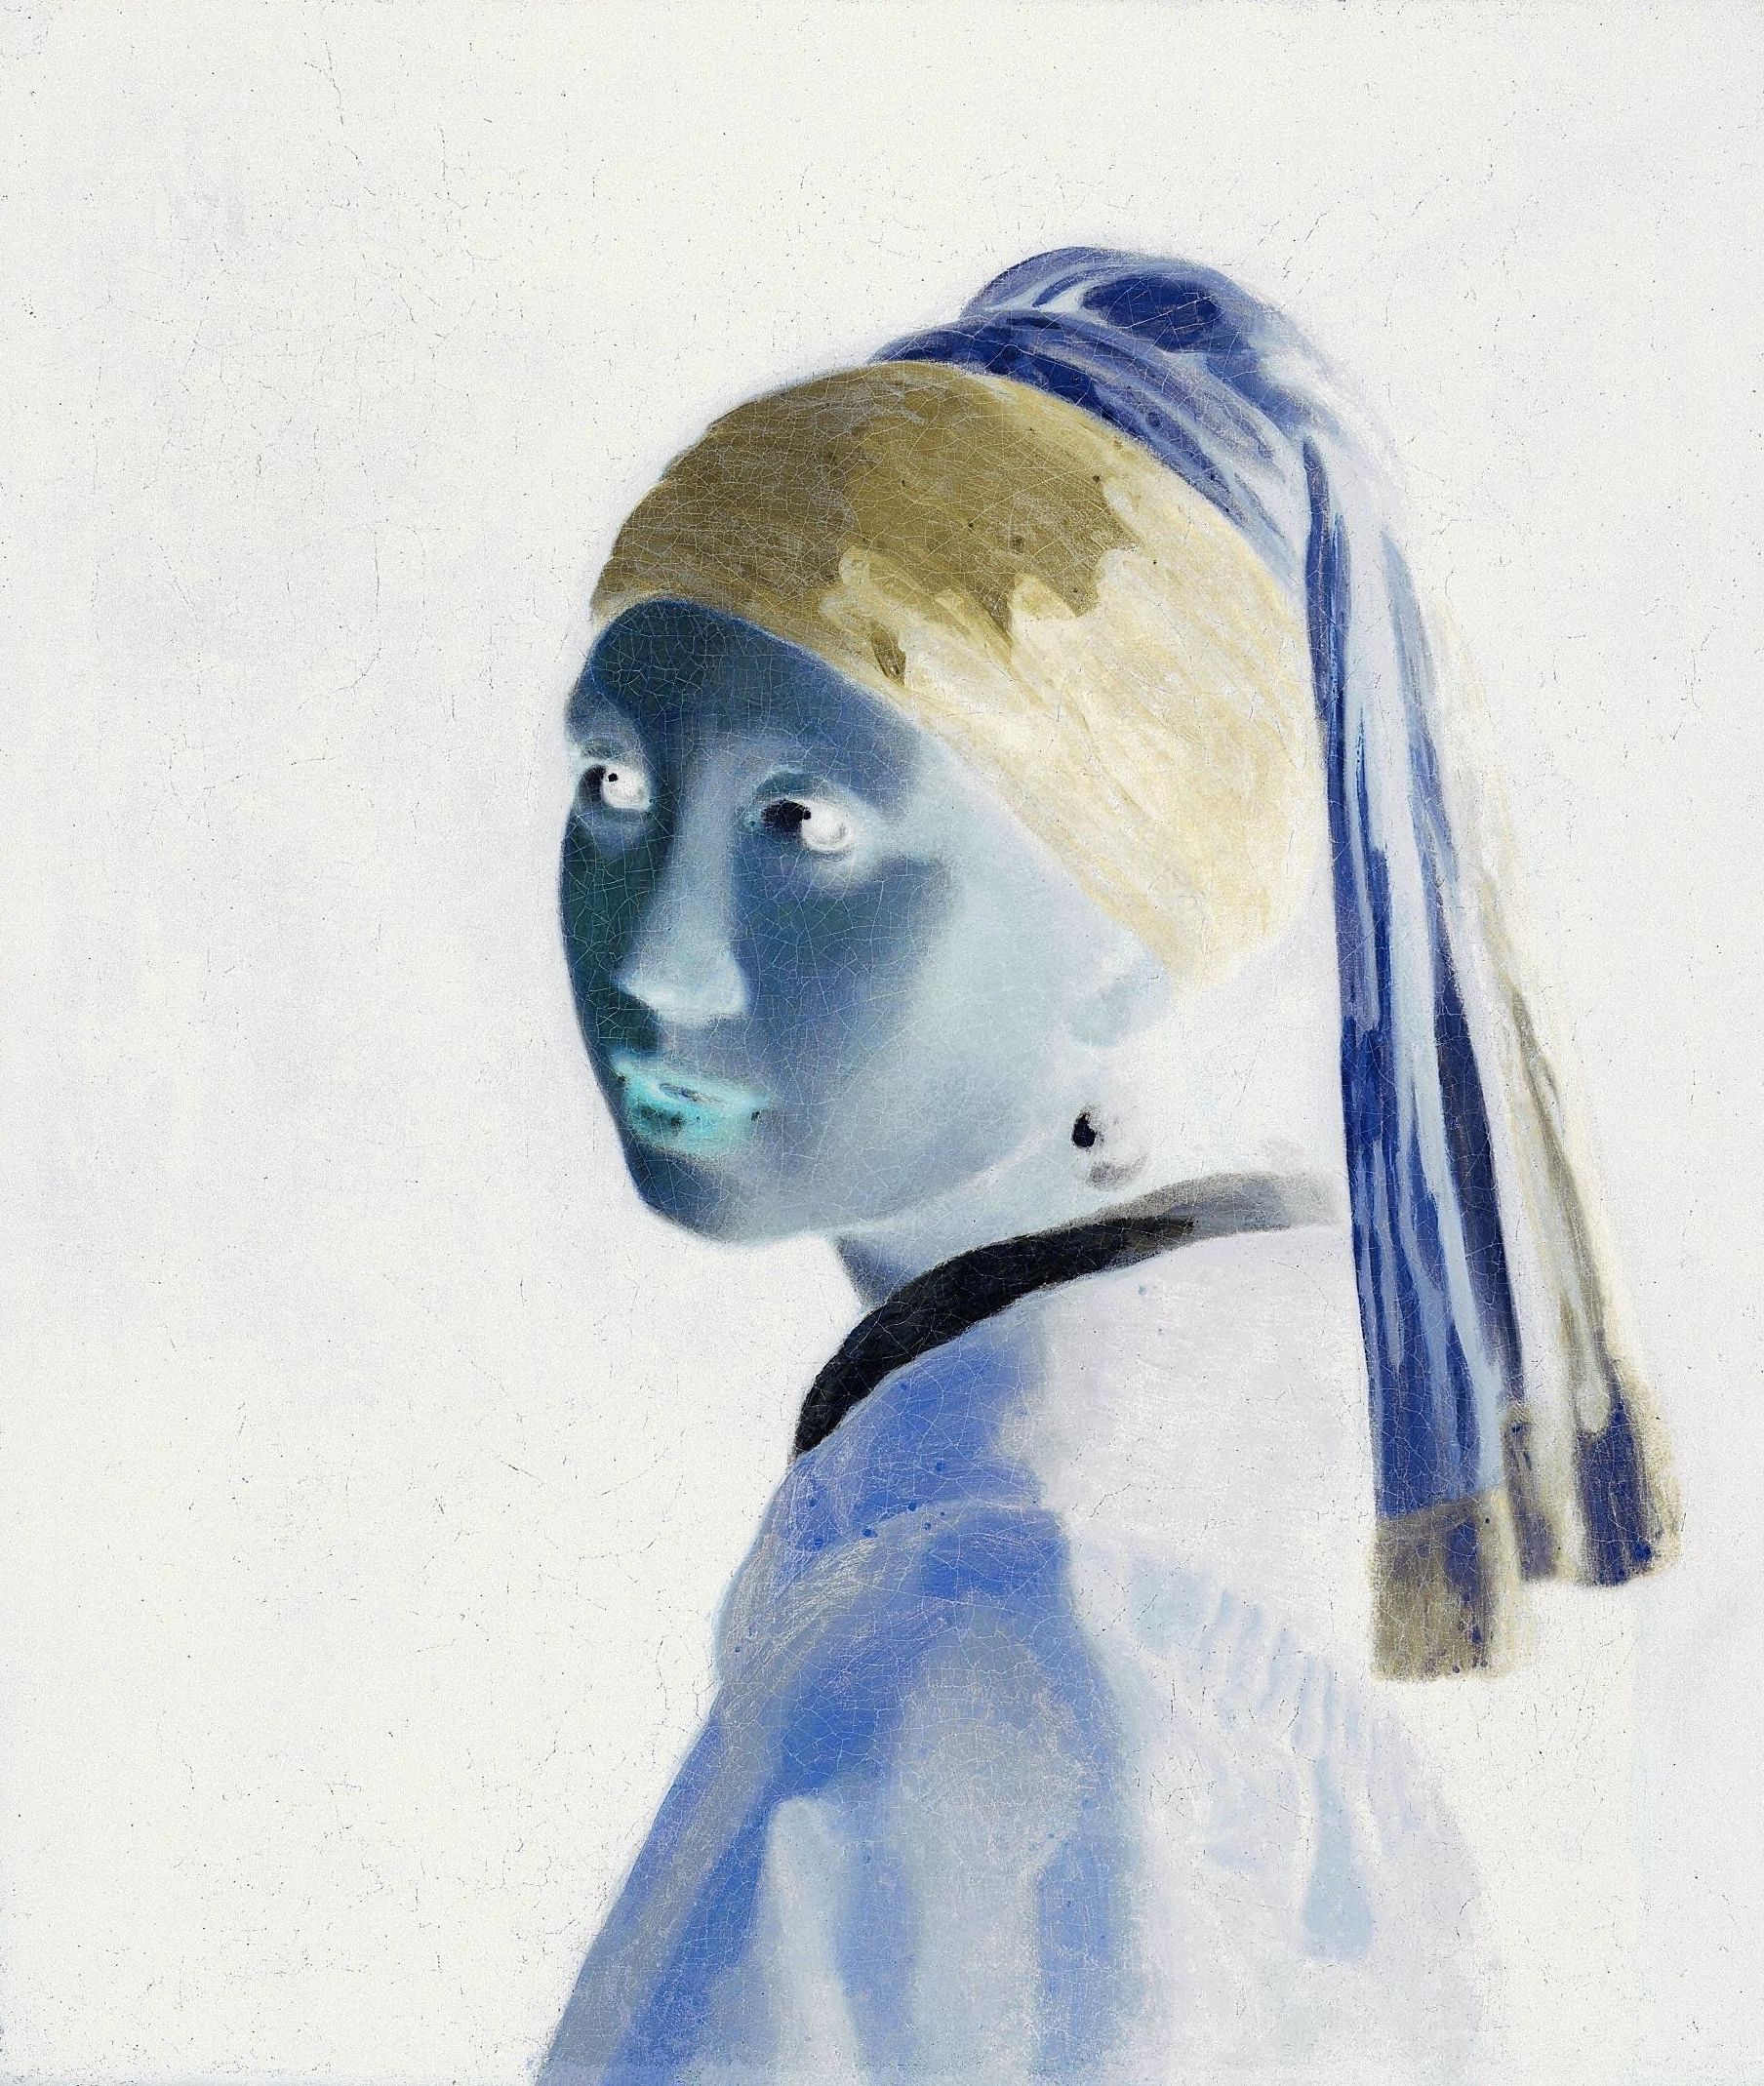 File:johannes Vermeer  Girl With A Pearl Earring (1660s)  Negative